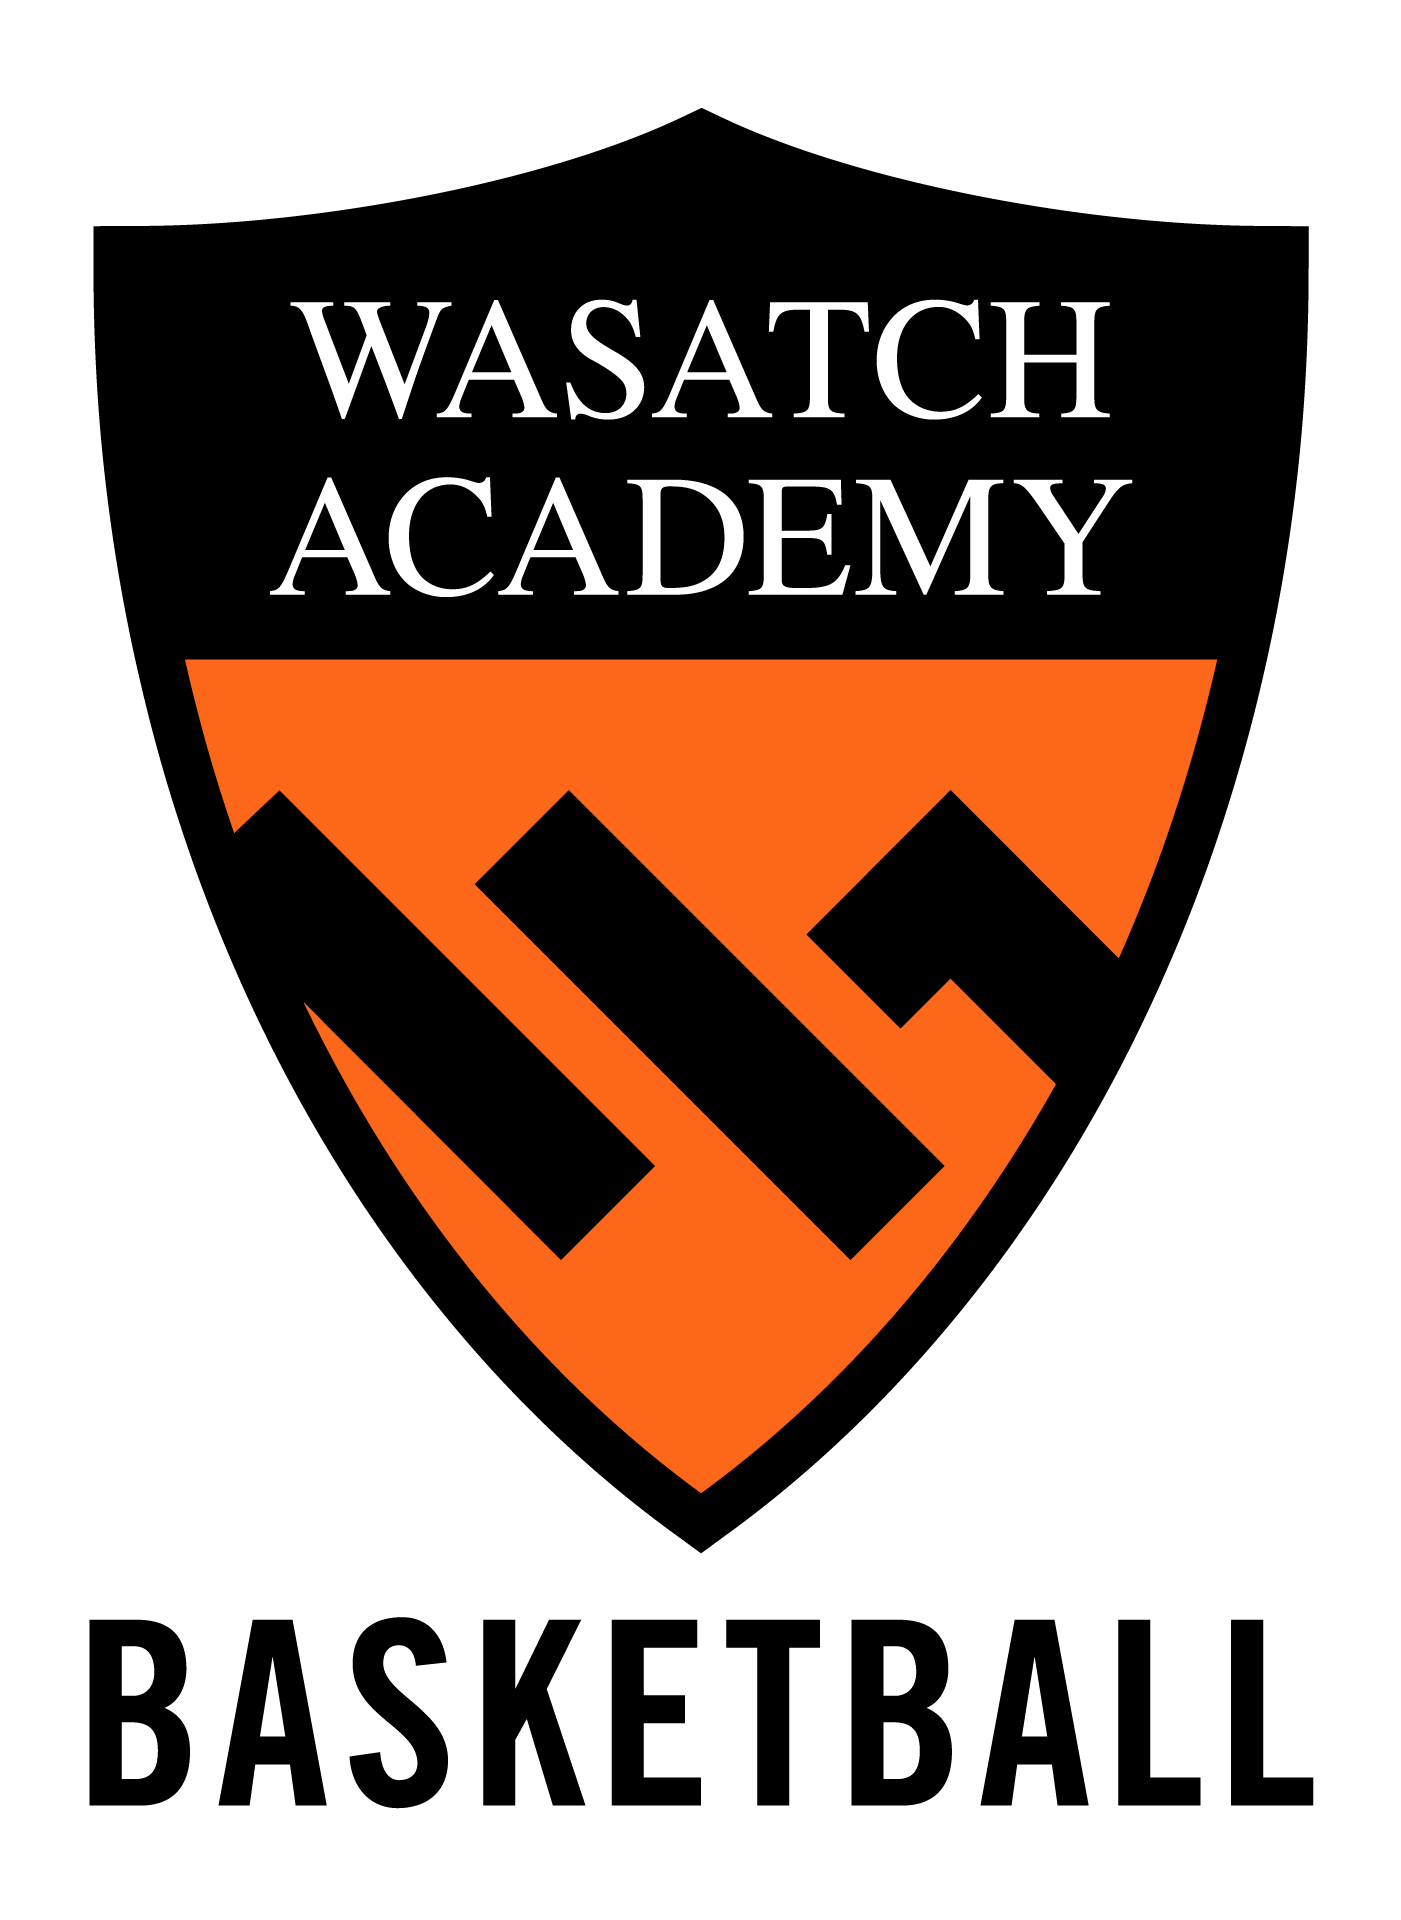 Wasatch Academy Basketball